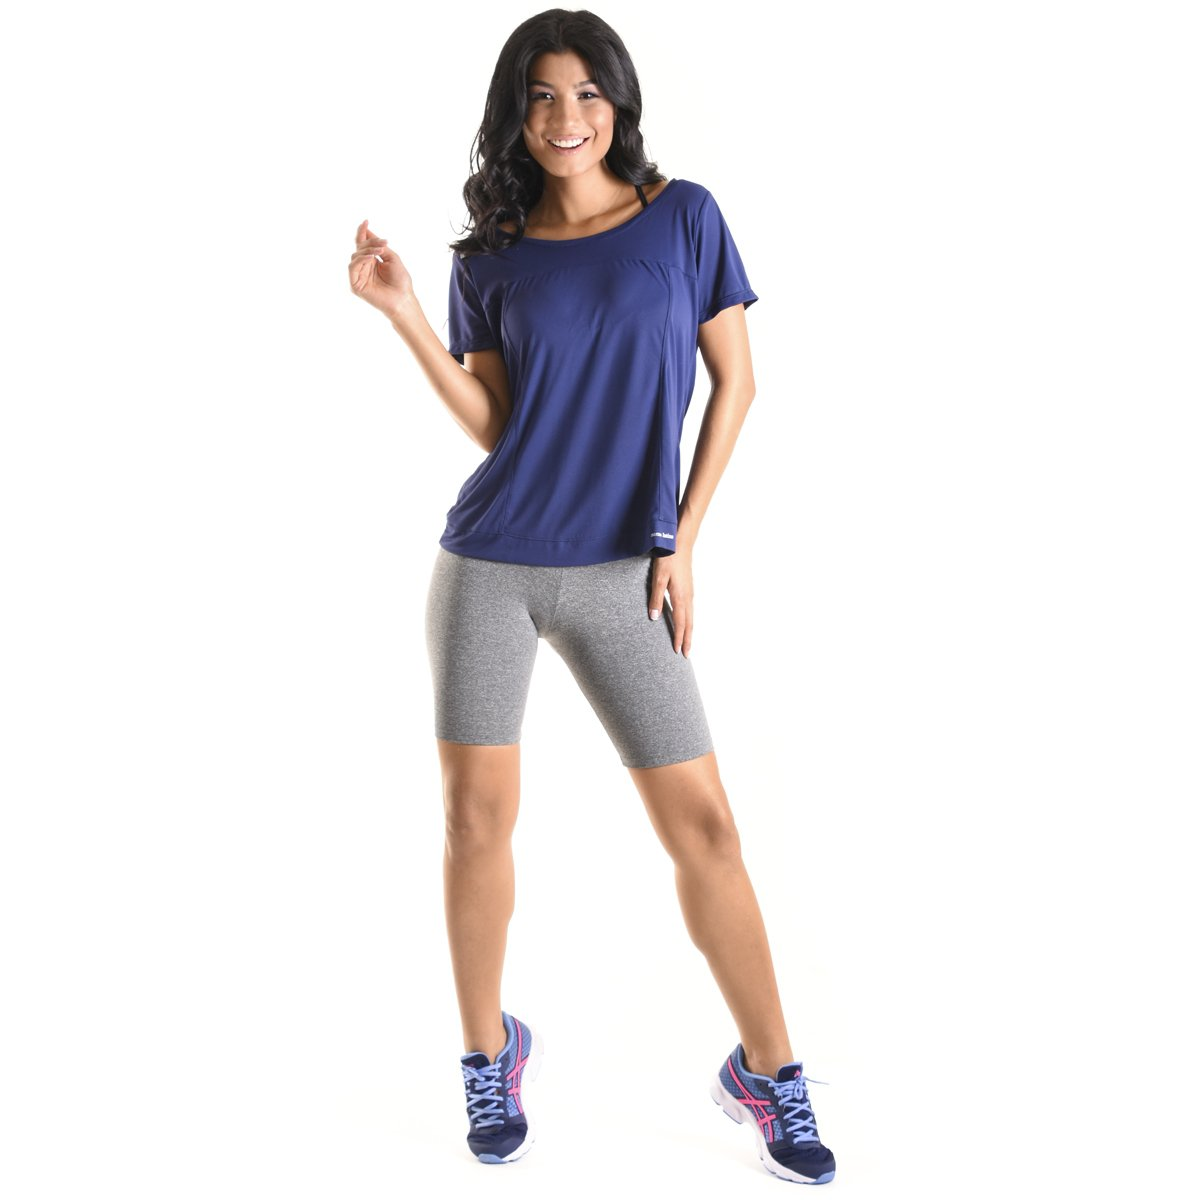 Mama Marinho Mama Blusa Force Cross Latina Cross Latina Blusa Sport Sport Force xwCqpPYw